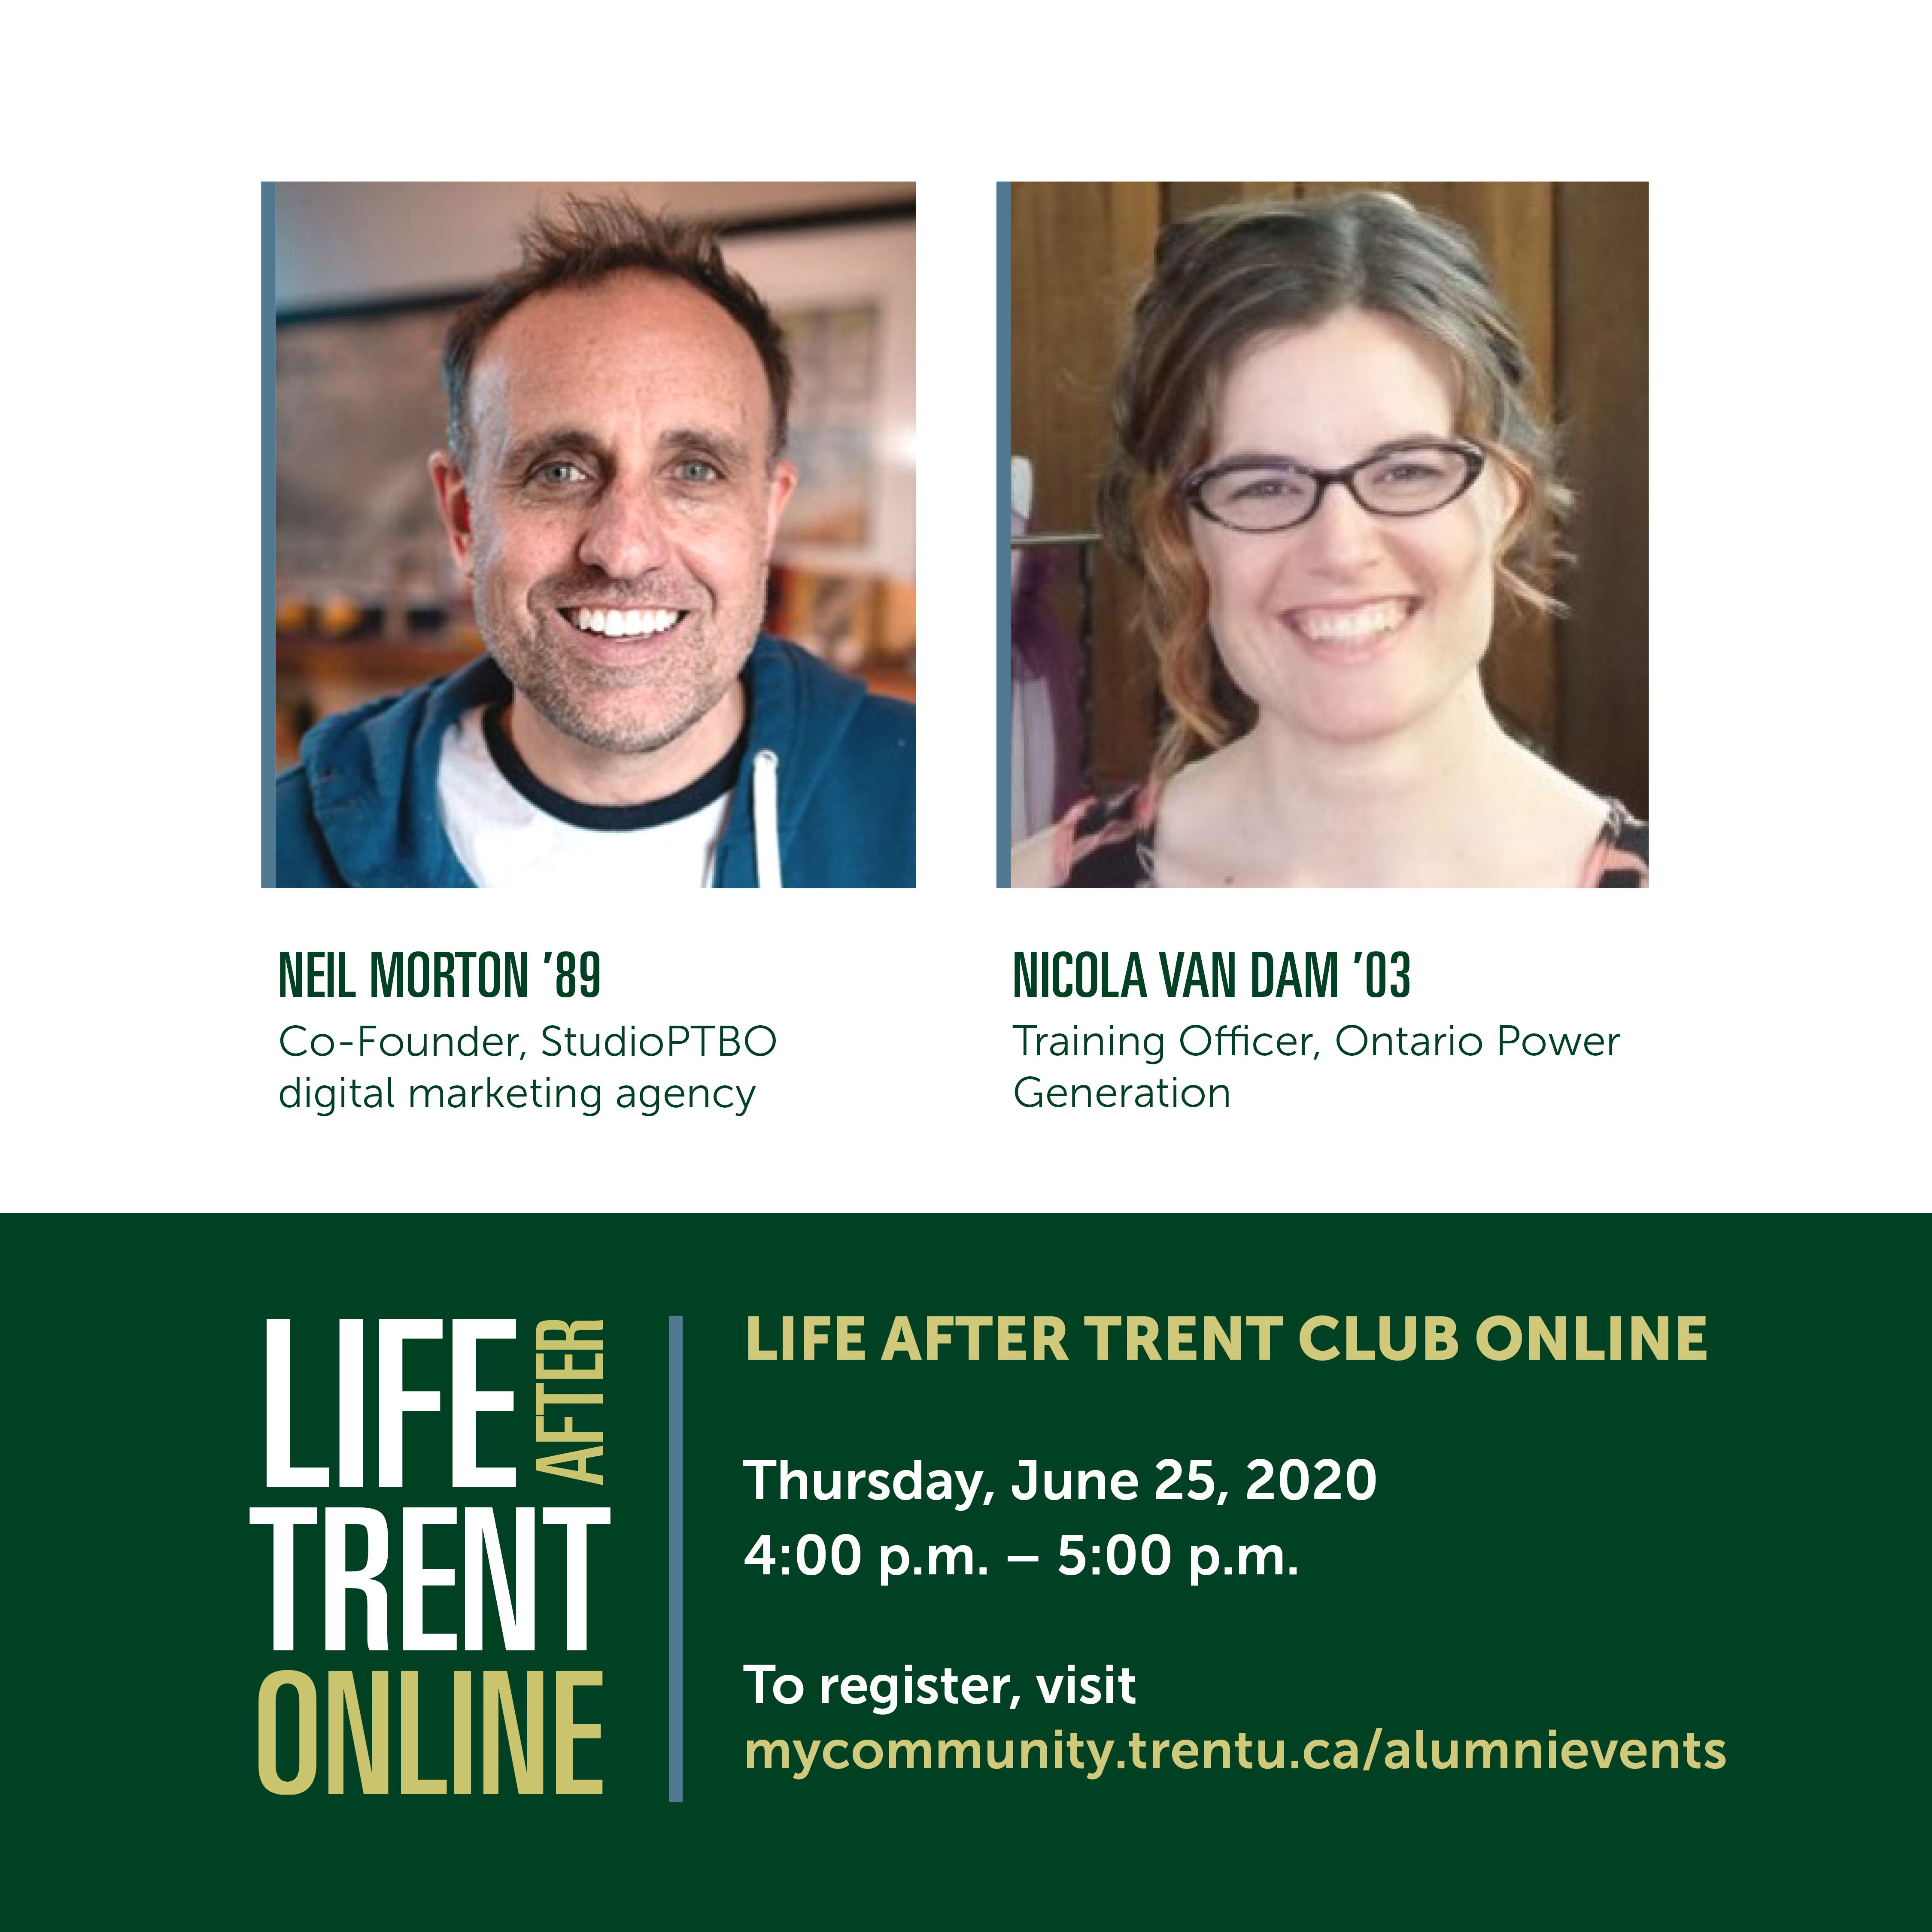 Life After Trent Club Online